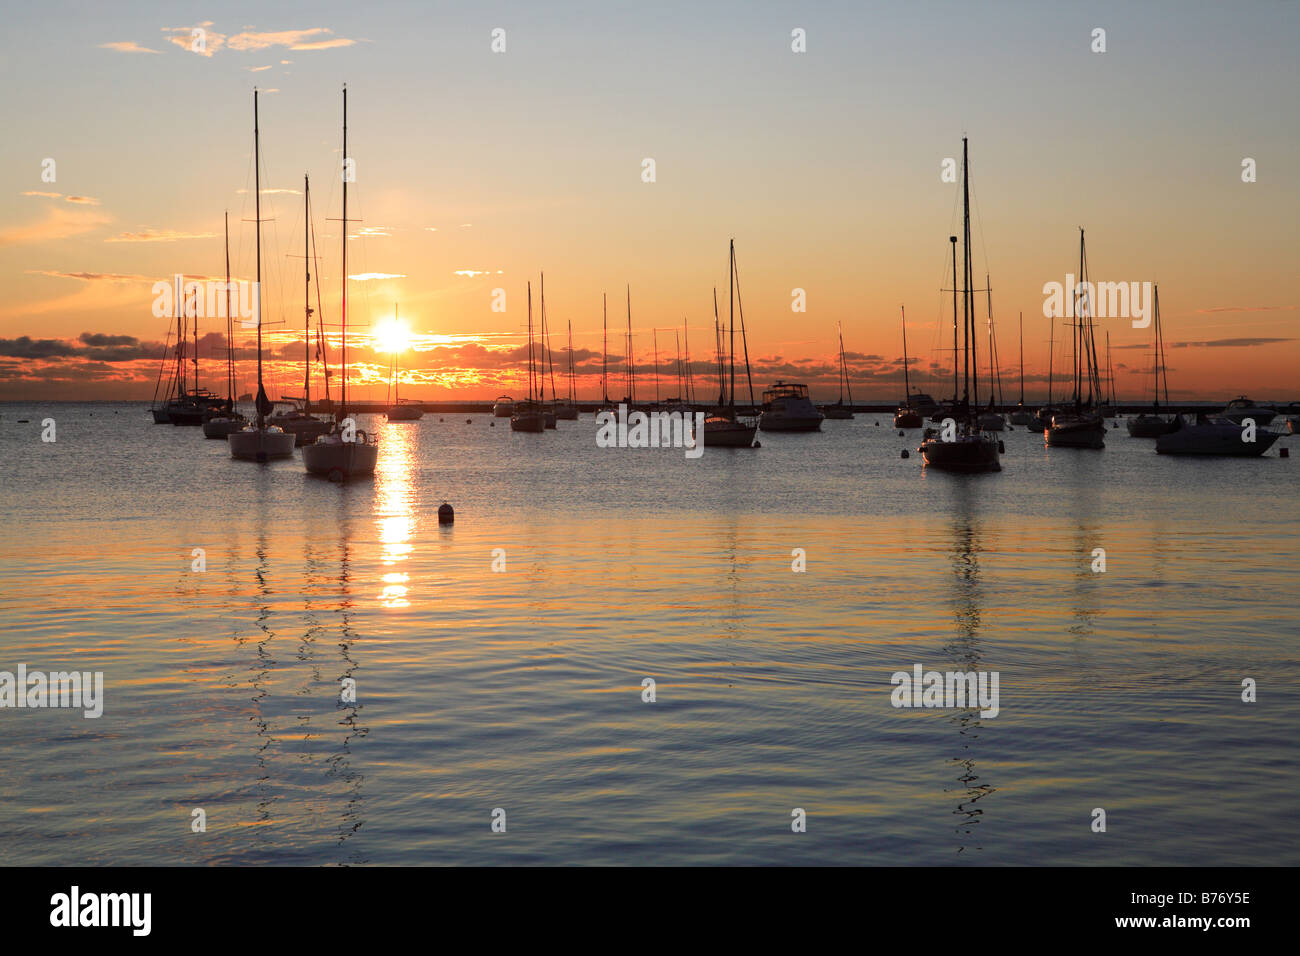 BOATS AT SUNRISE IN MONROE HARBOR IN DOWNTOWN CHICAGO ILLINOIS USA - Stock Image